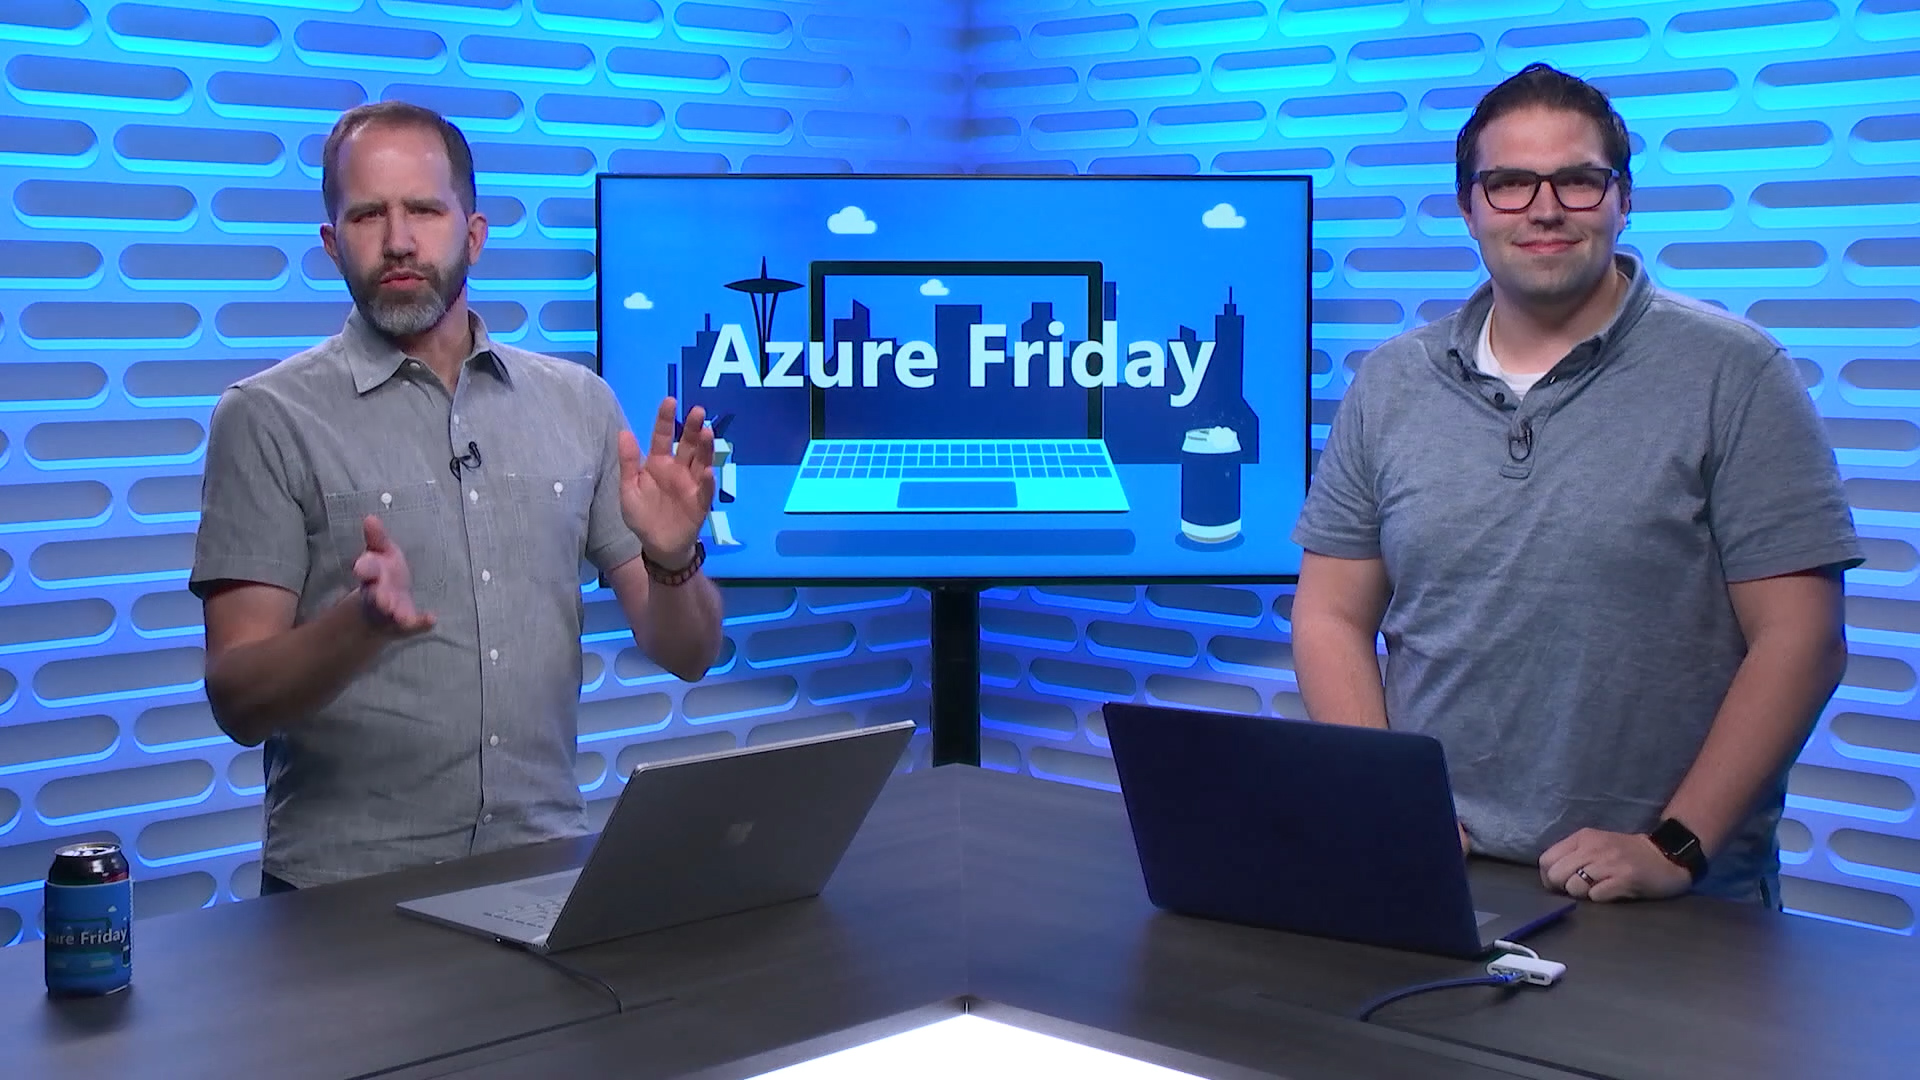 Go serverless: Event-driven applications with Azure Functions